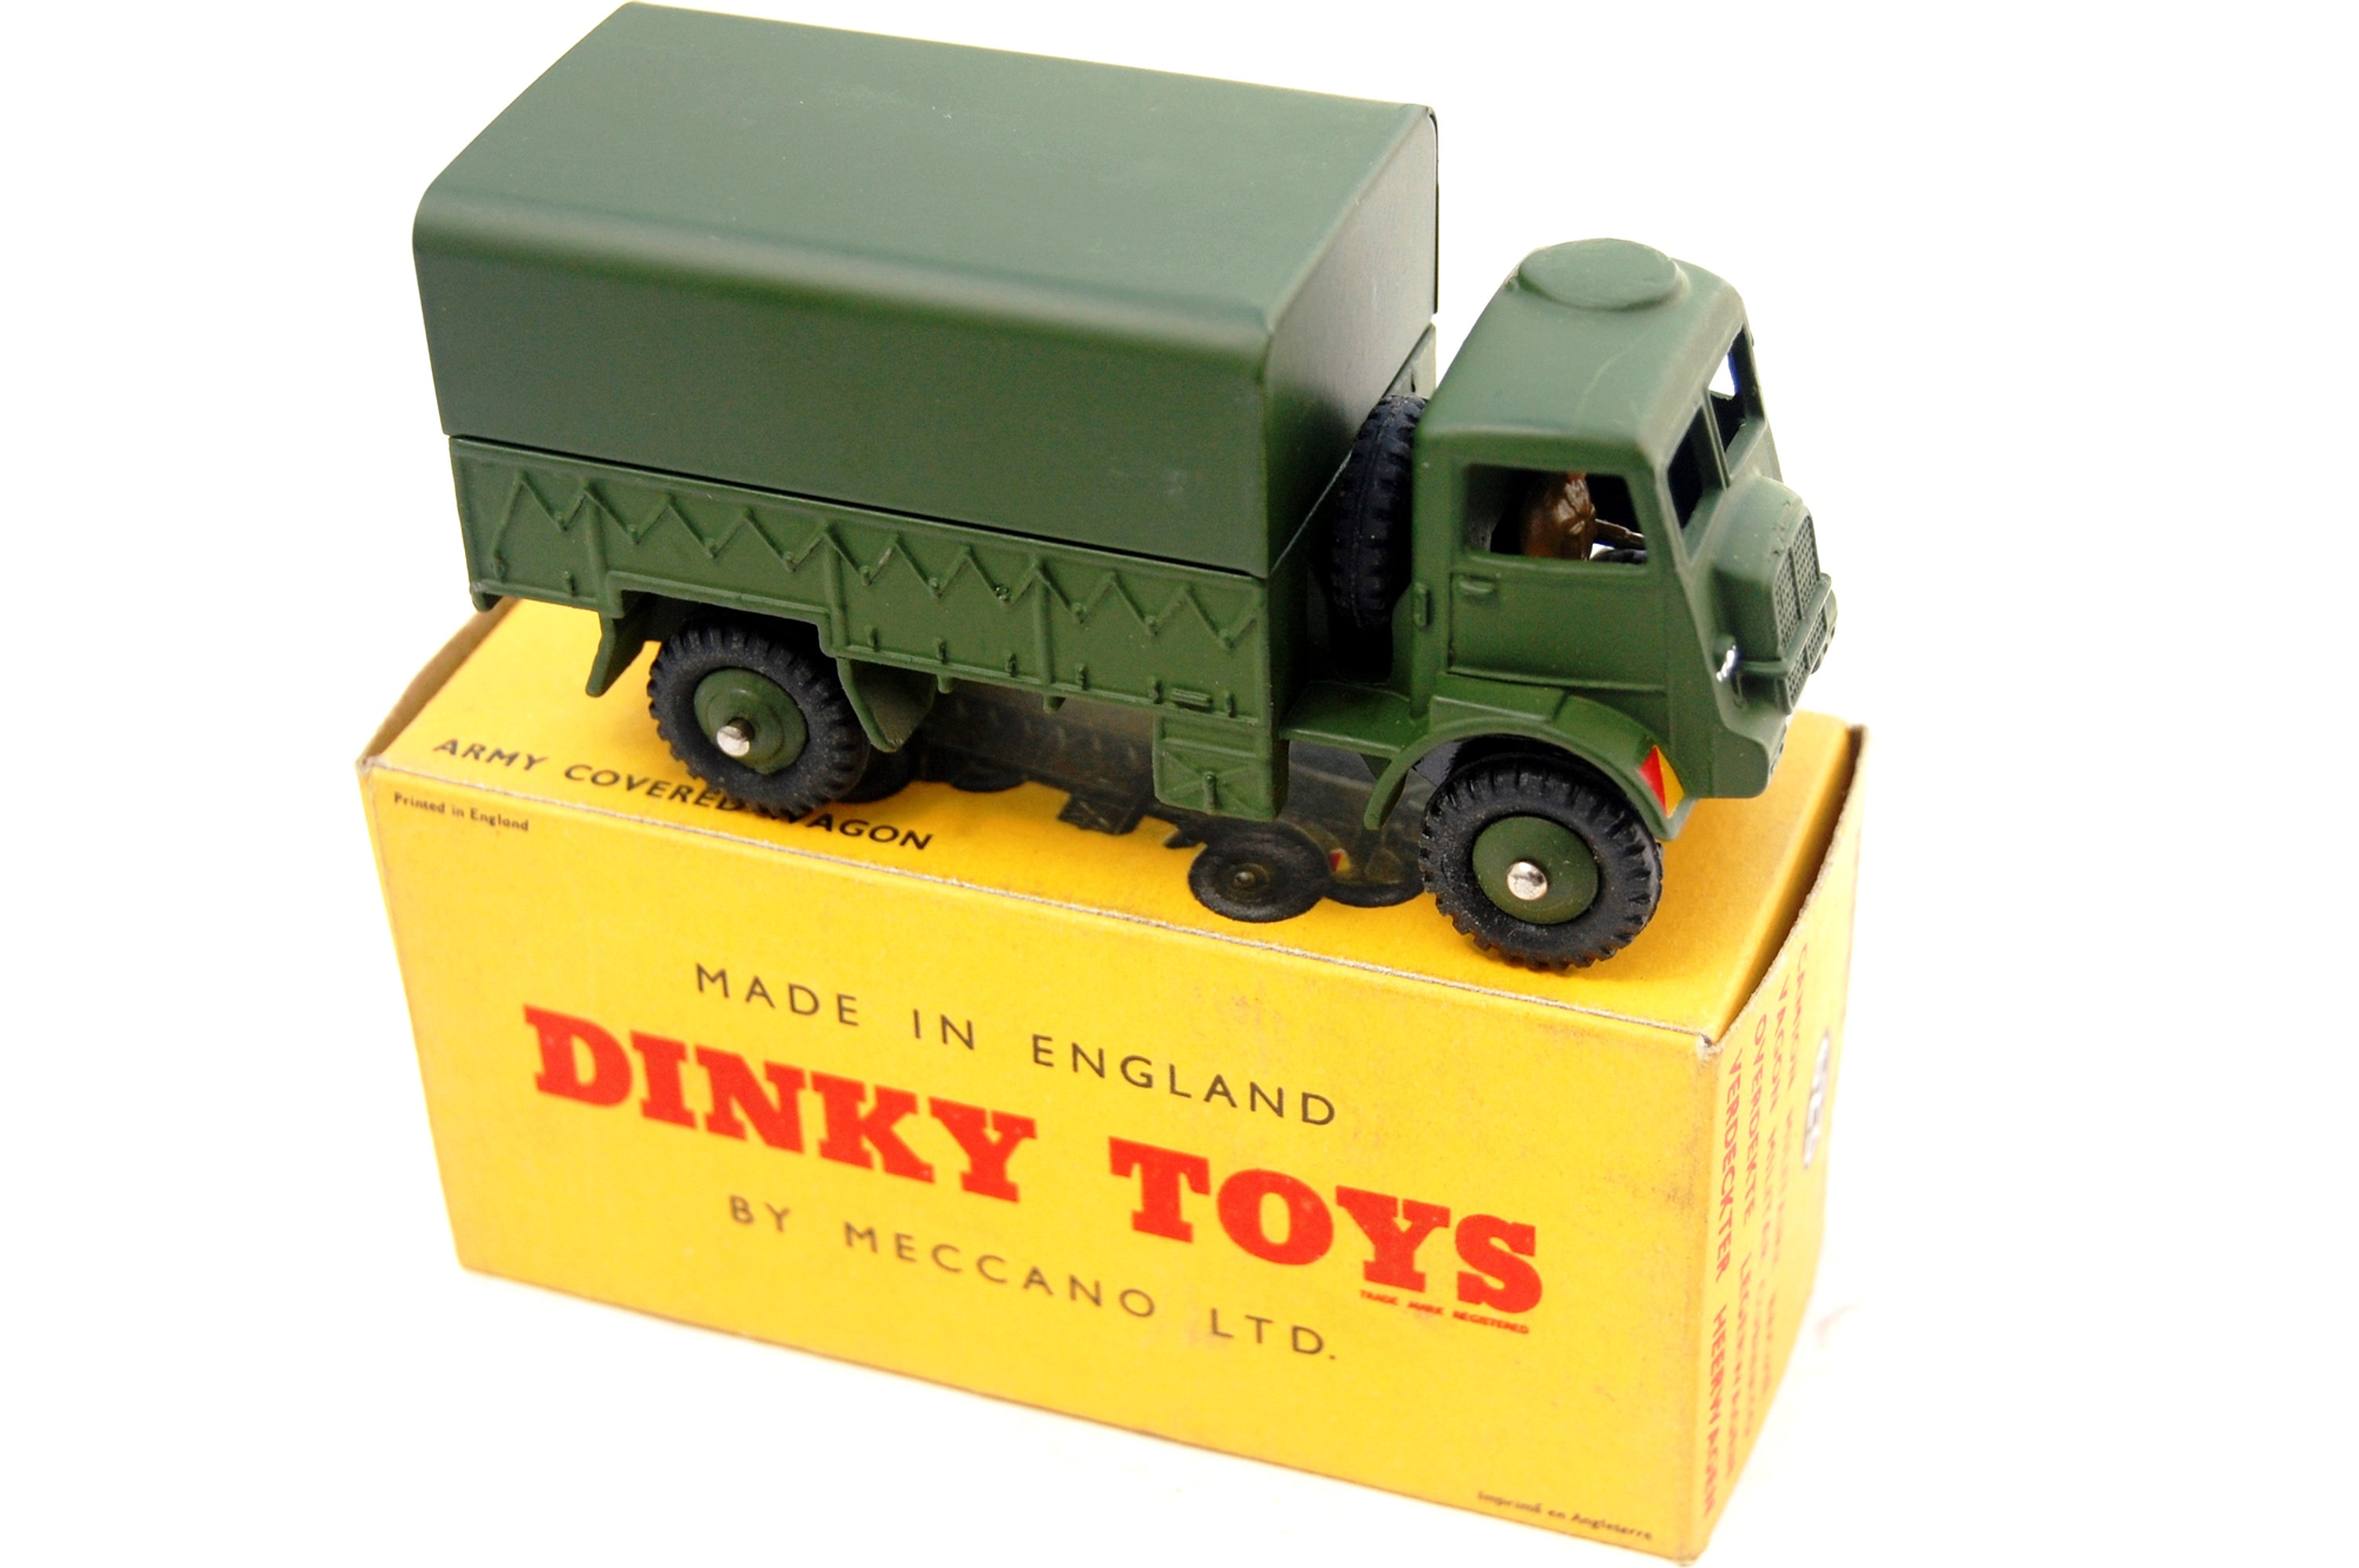 The Dinky Toys - The Colour Of Sex